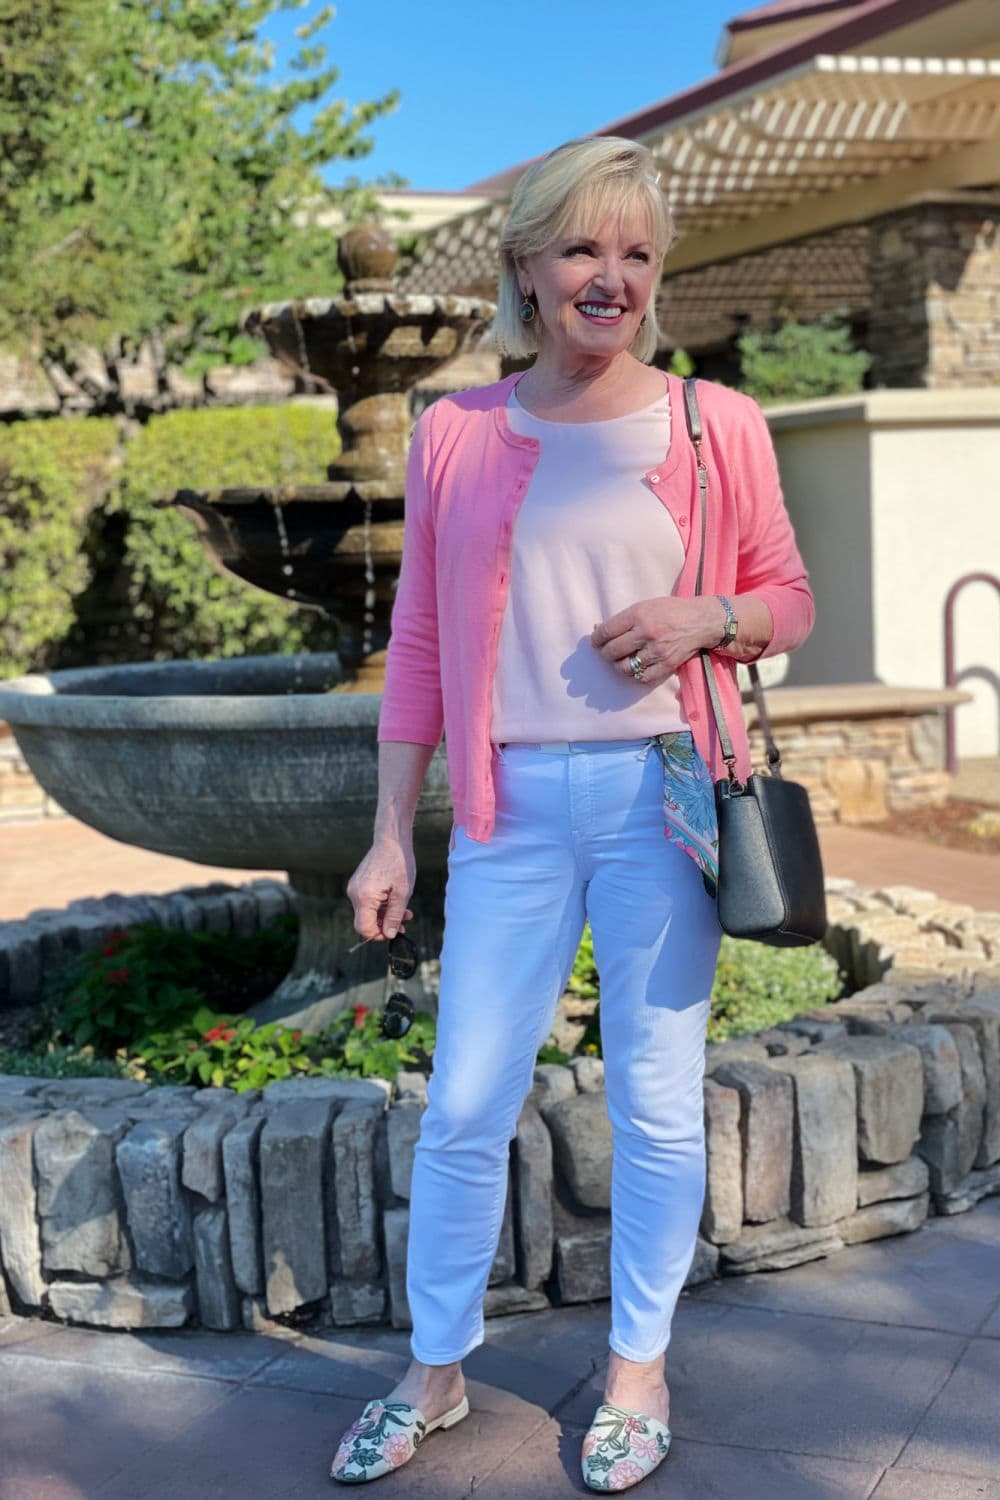 over 50 fashion blogger jennifer connolly of a well styled life wearign talboys pink cardigan with chicos white jeans